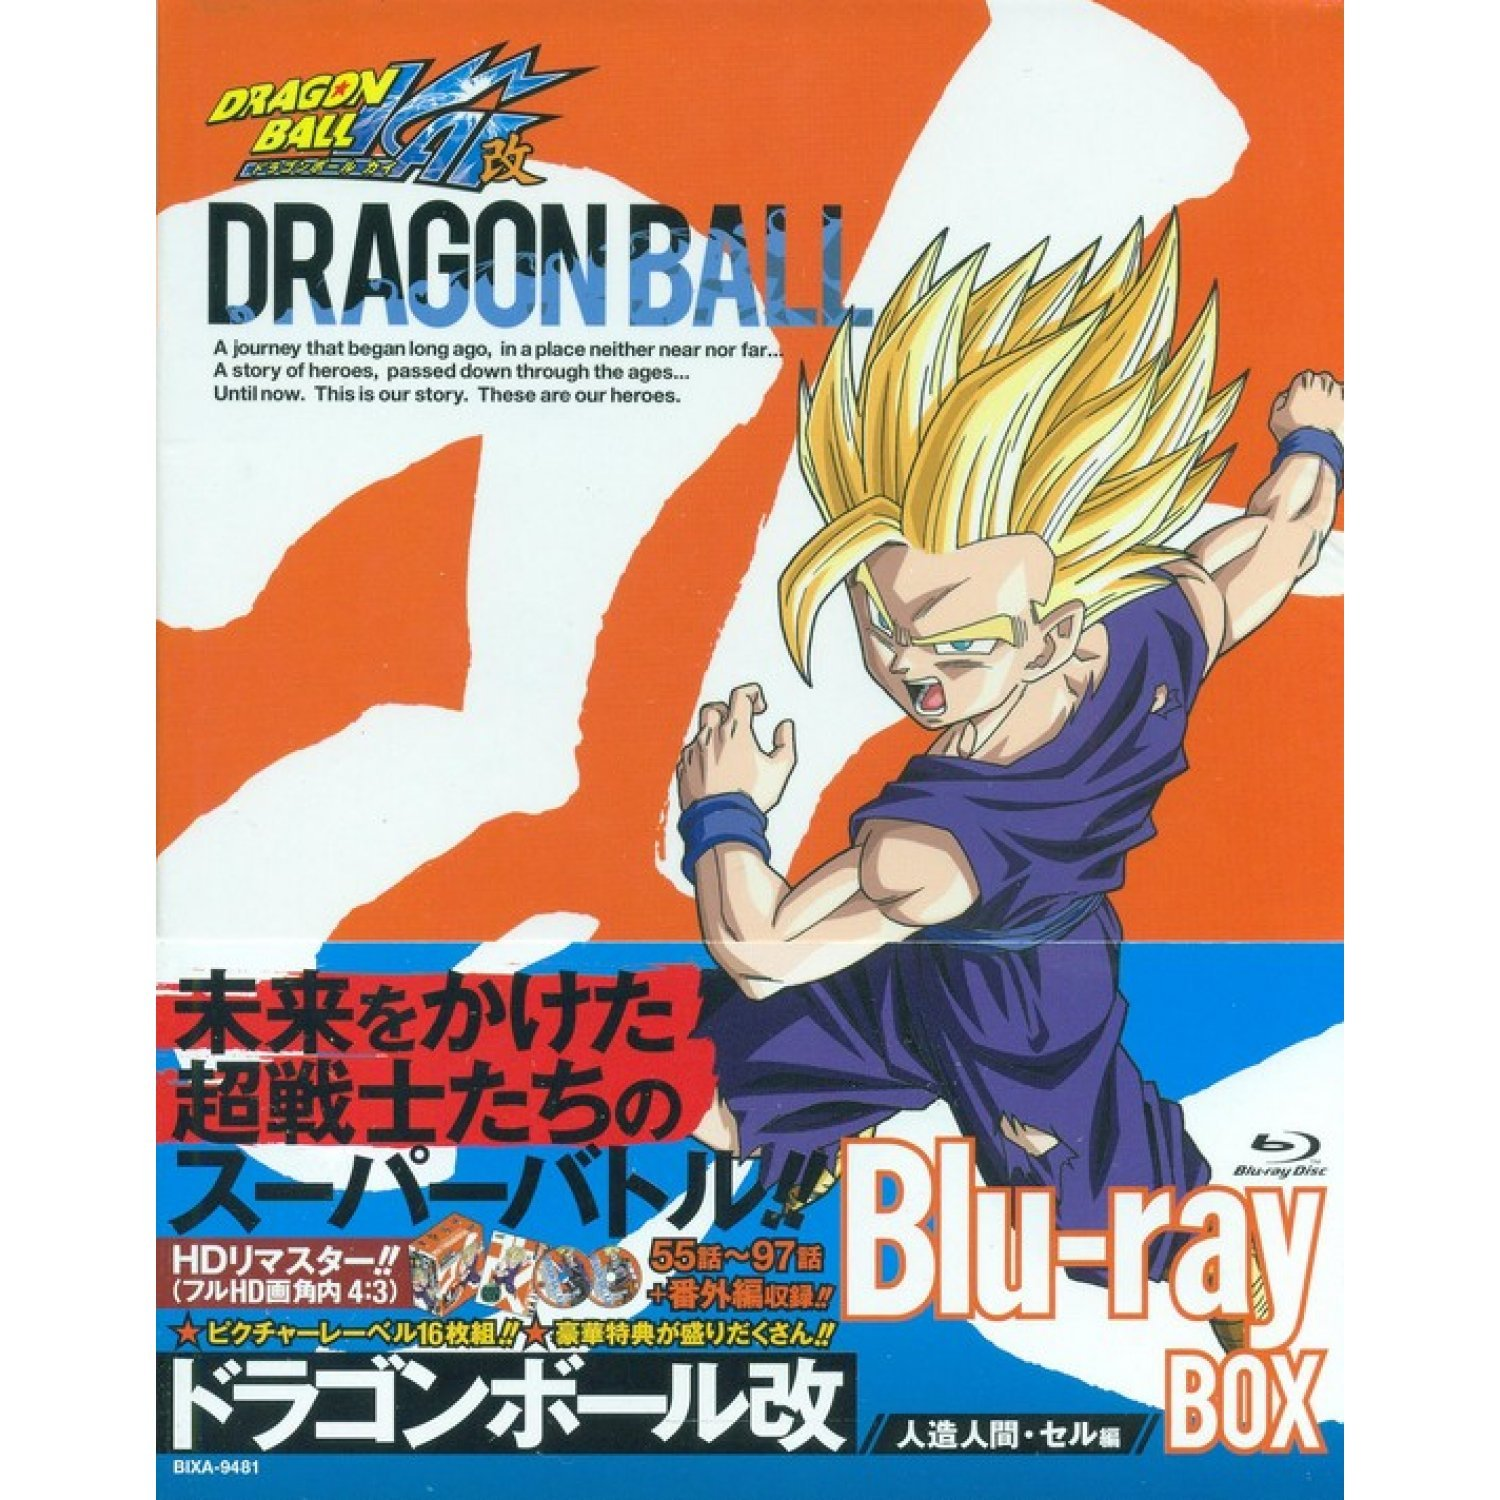 dragon ball kai jinzou ningen cell hen blu ray box